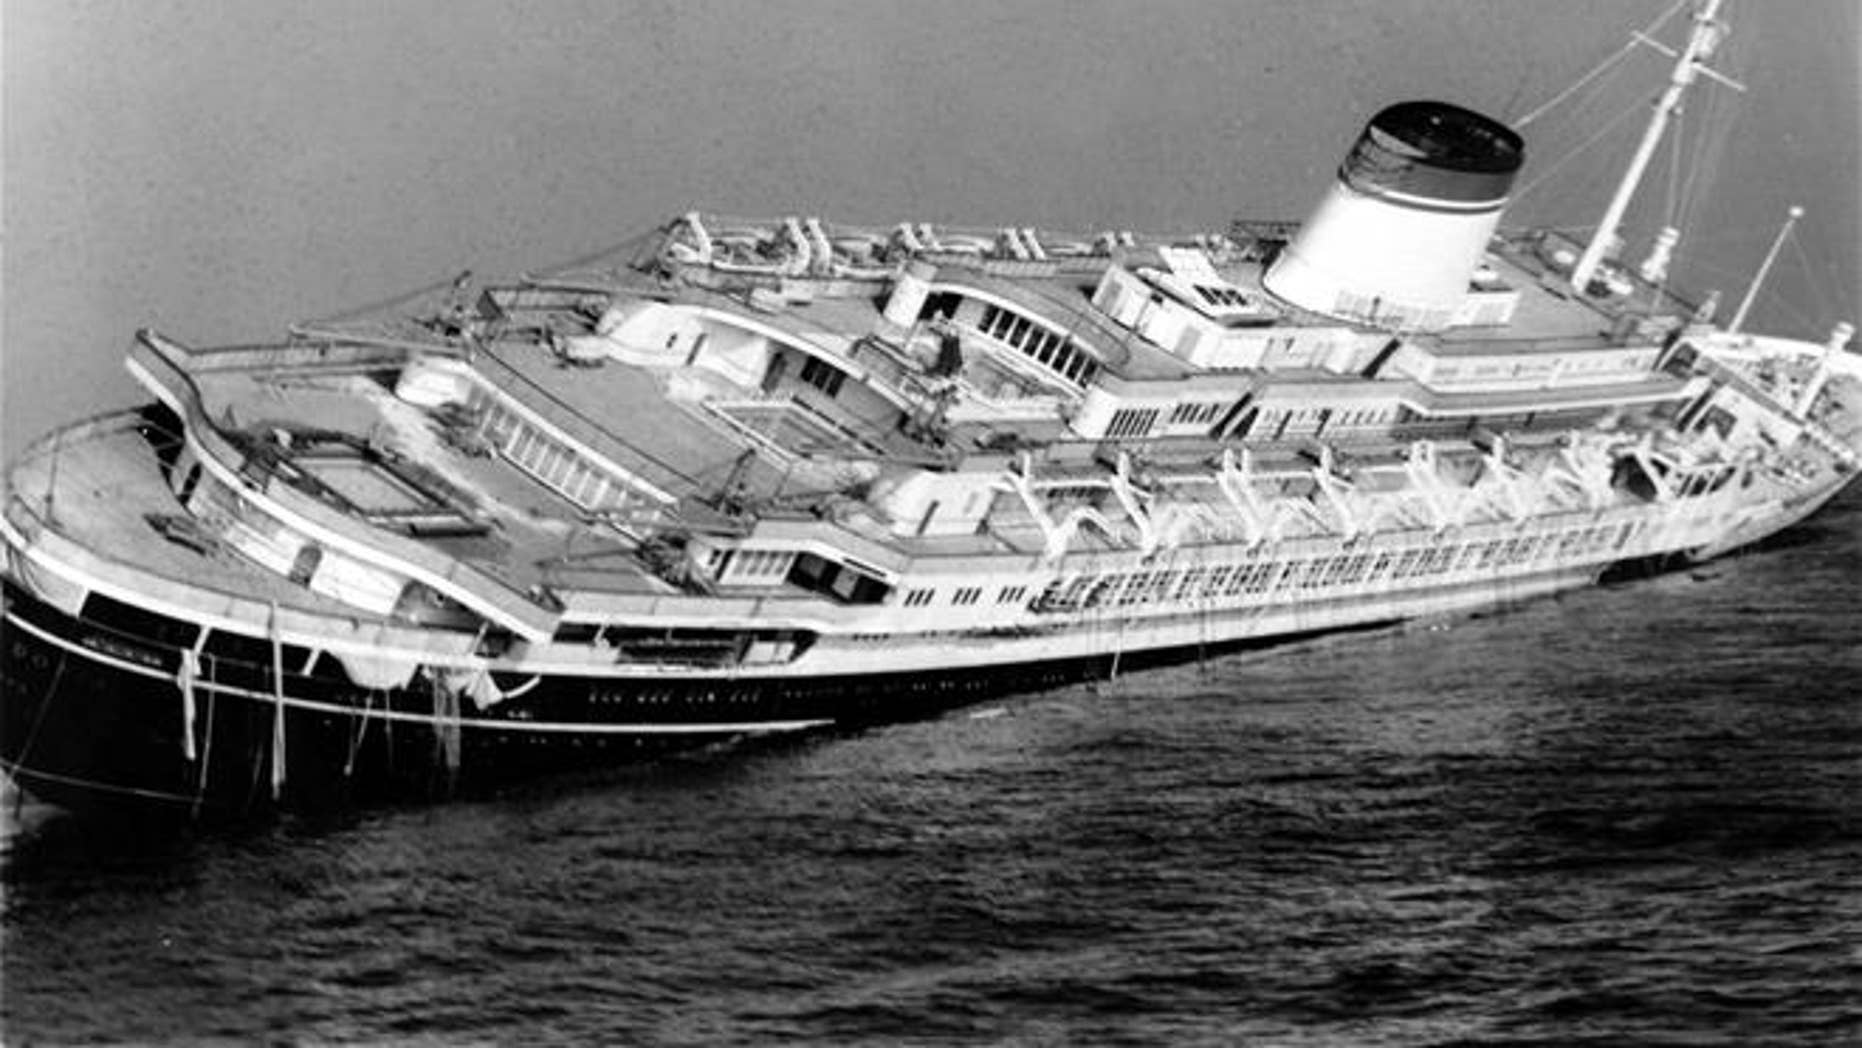 This July 26, 1956 photo shows the Andrea Doria before it sank.